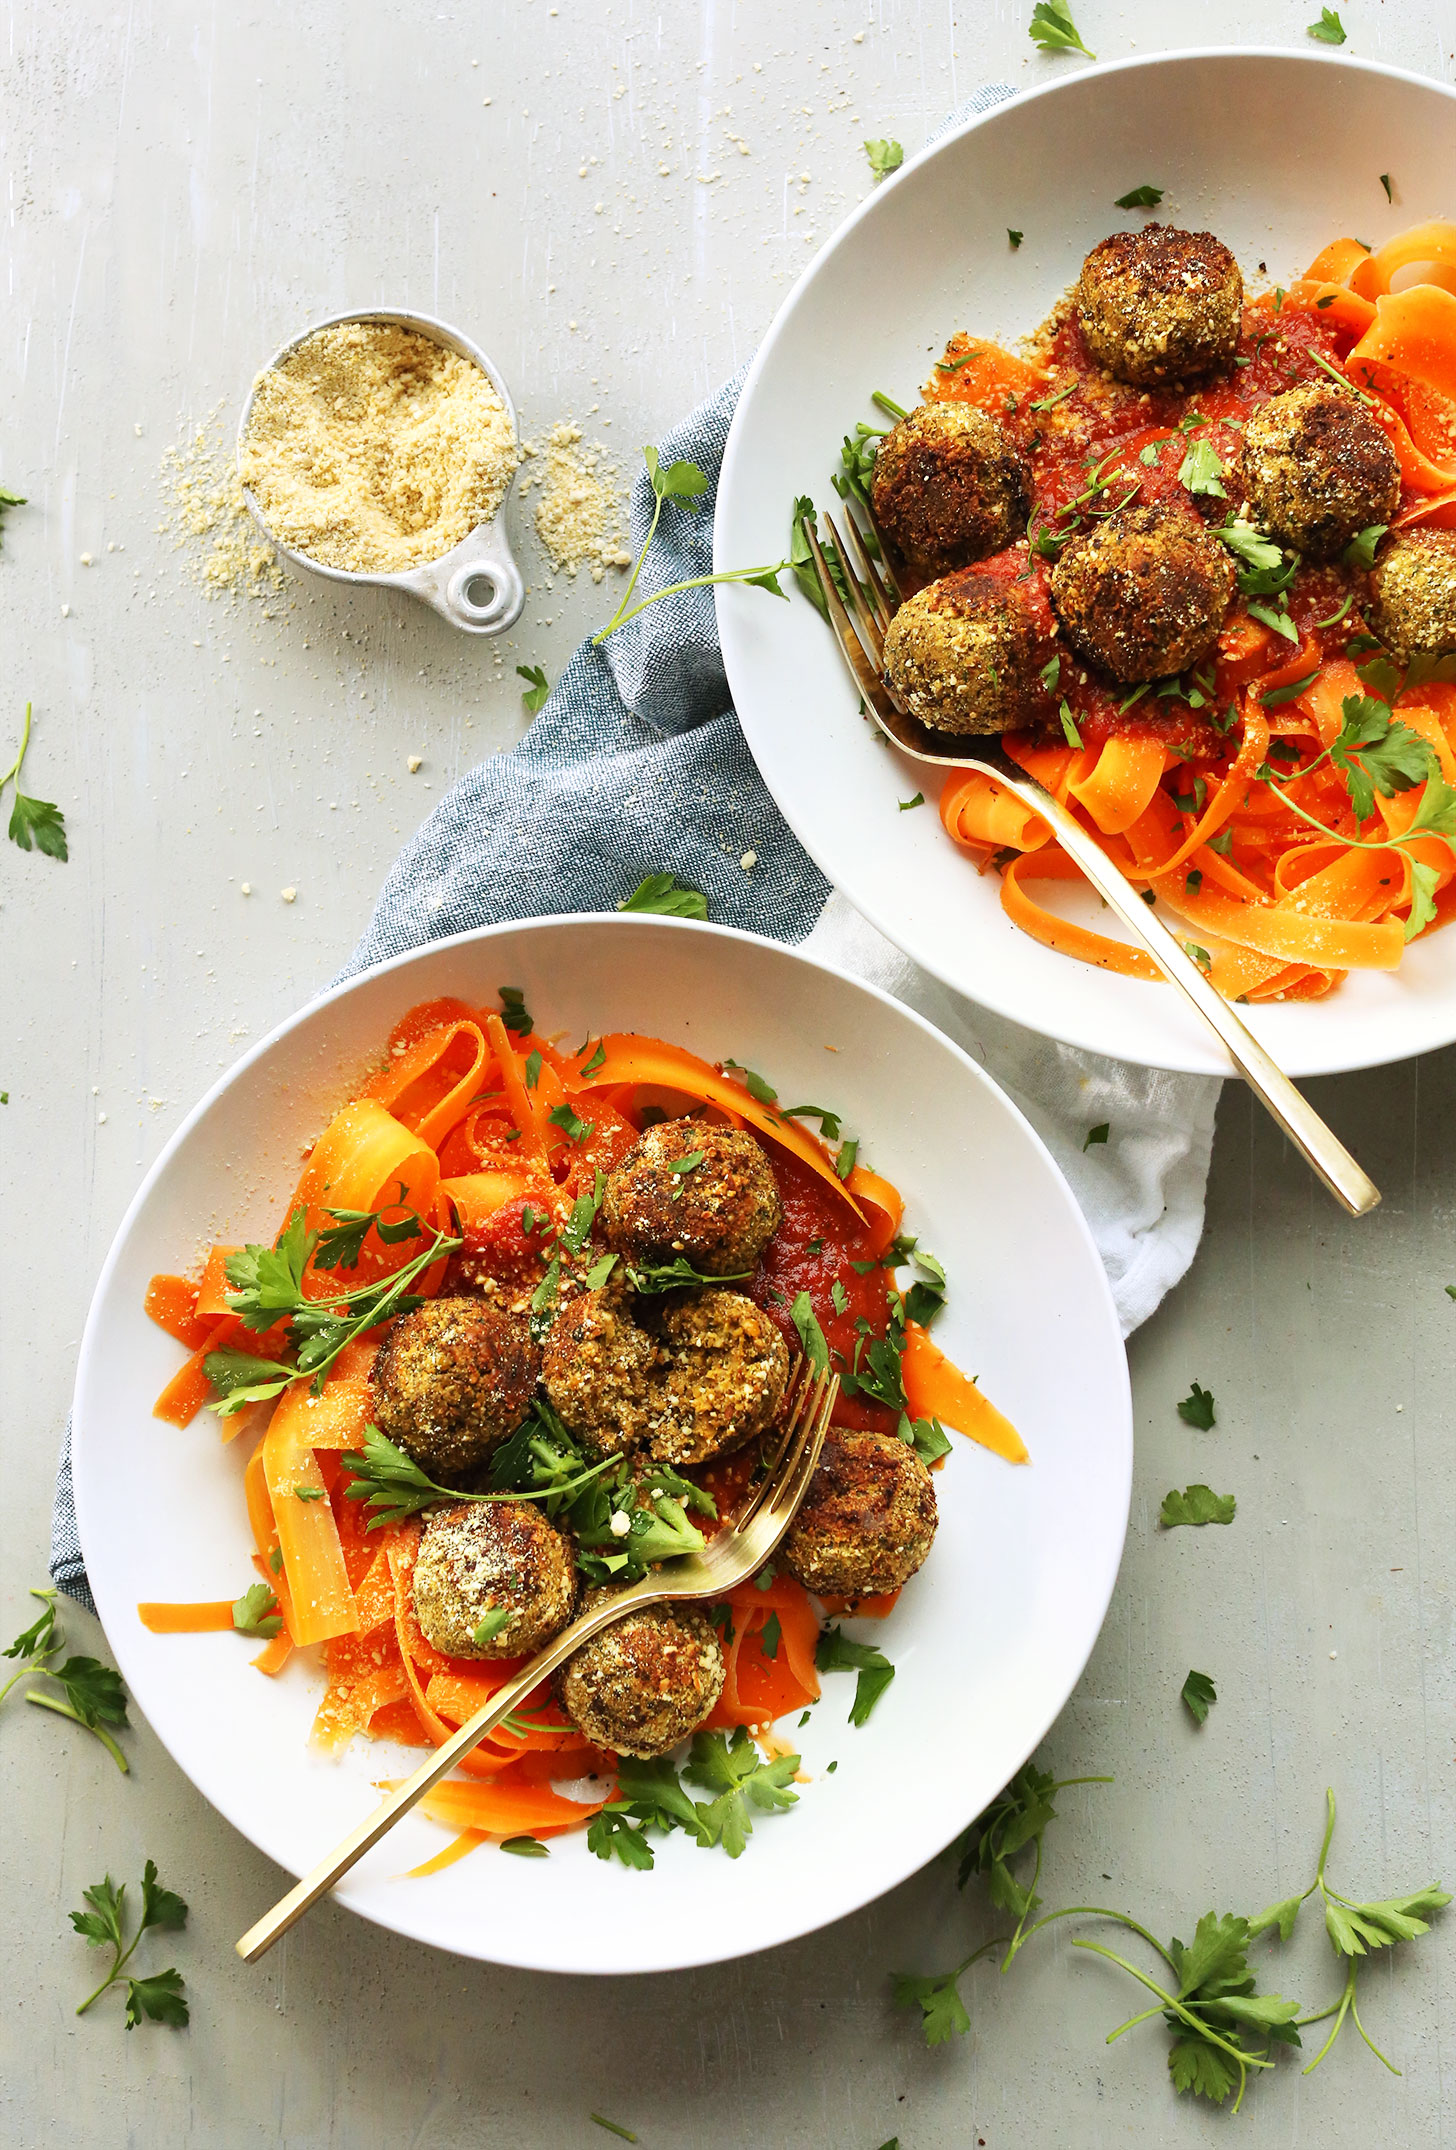 Original meatballs - 10 simple and delicious recipes 31